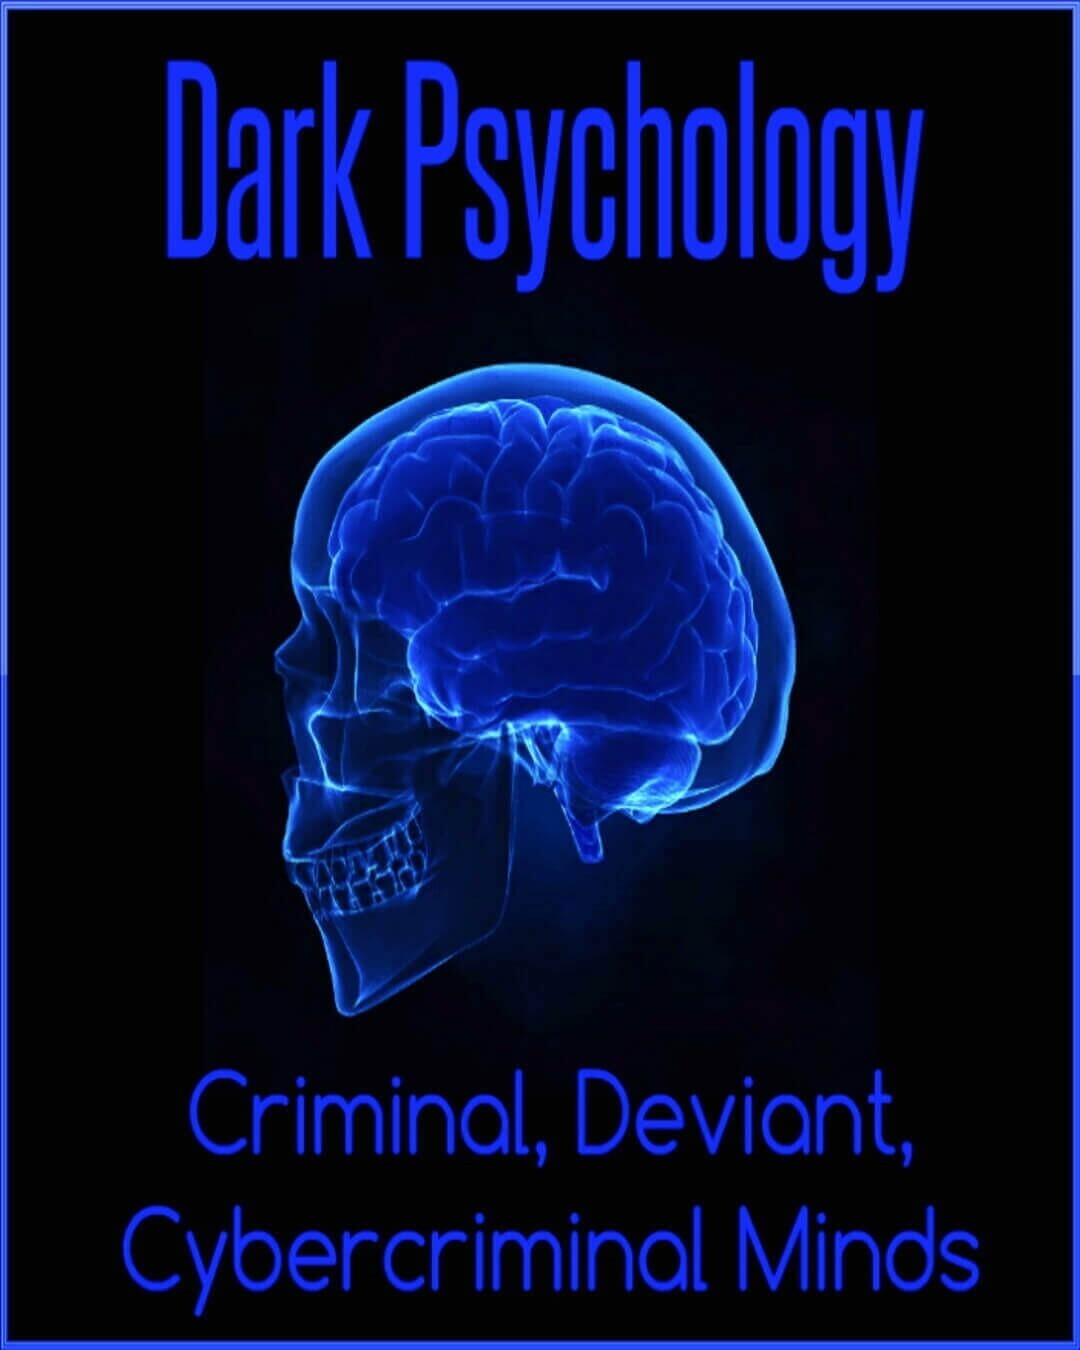 michael-nuccitelli-dark-psychology-image-3